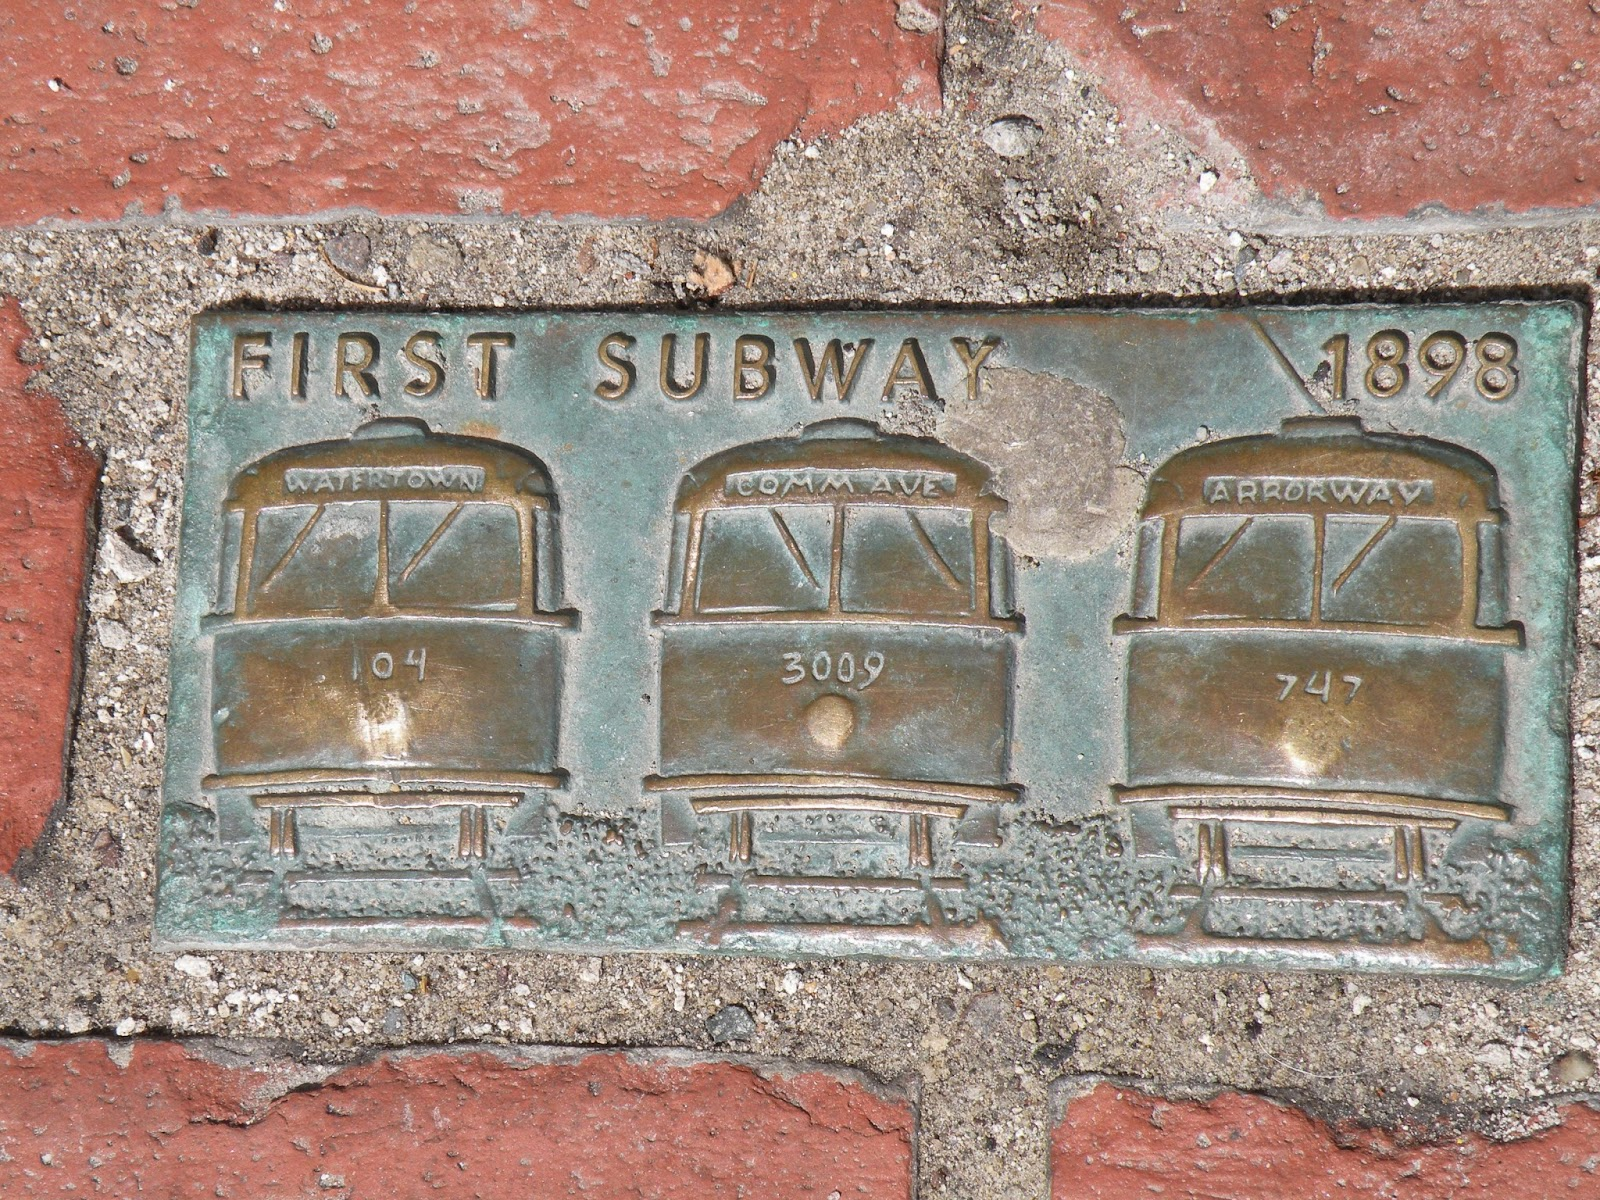 Boston Monuments First subway in America